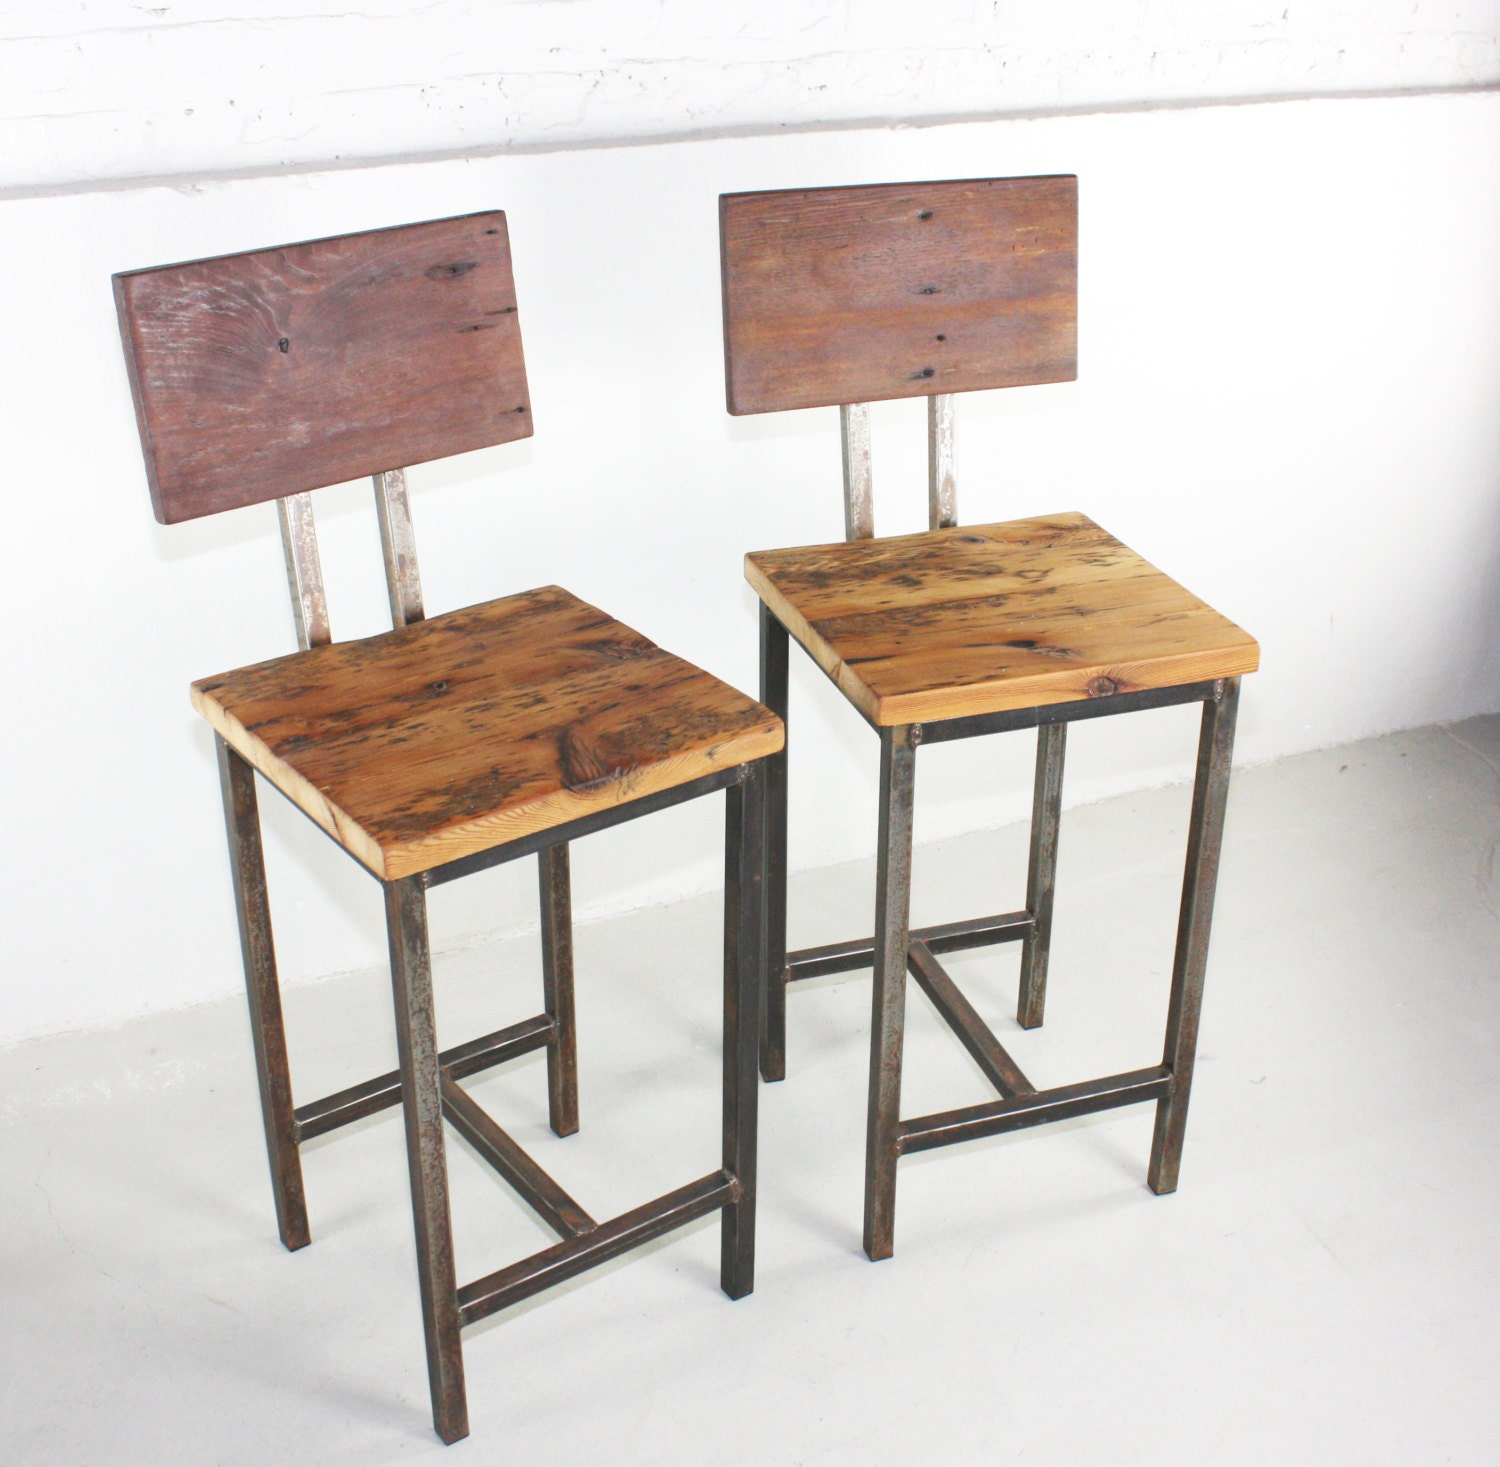 Reclaimed Wood Bar Stools ~ Rustic reclaimed wood pine bar stools with hand welded steel